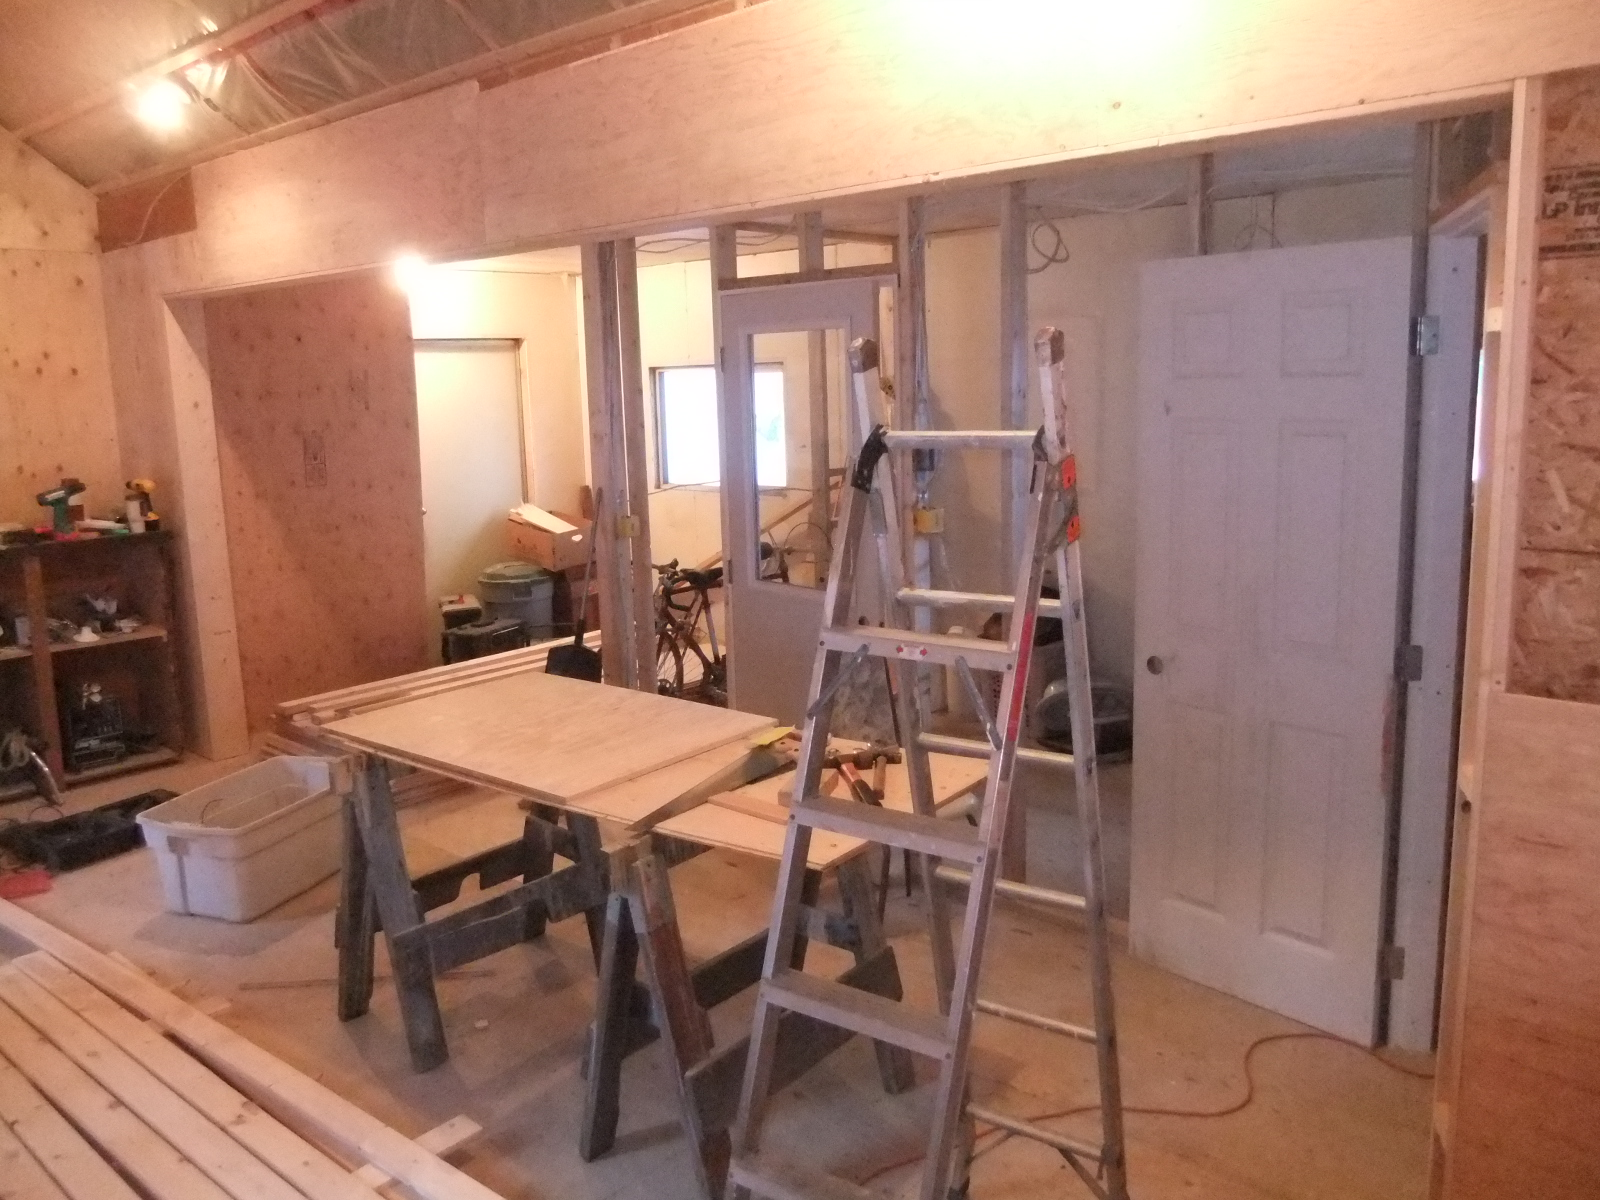 Paneling is starting to go up on the walls and transform the space into something new.